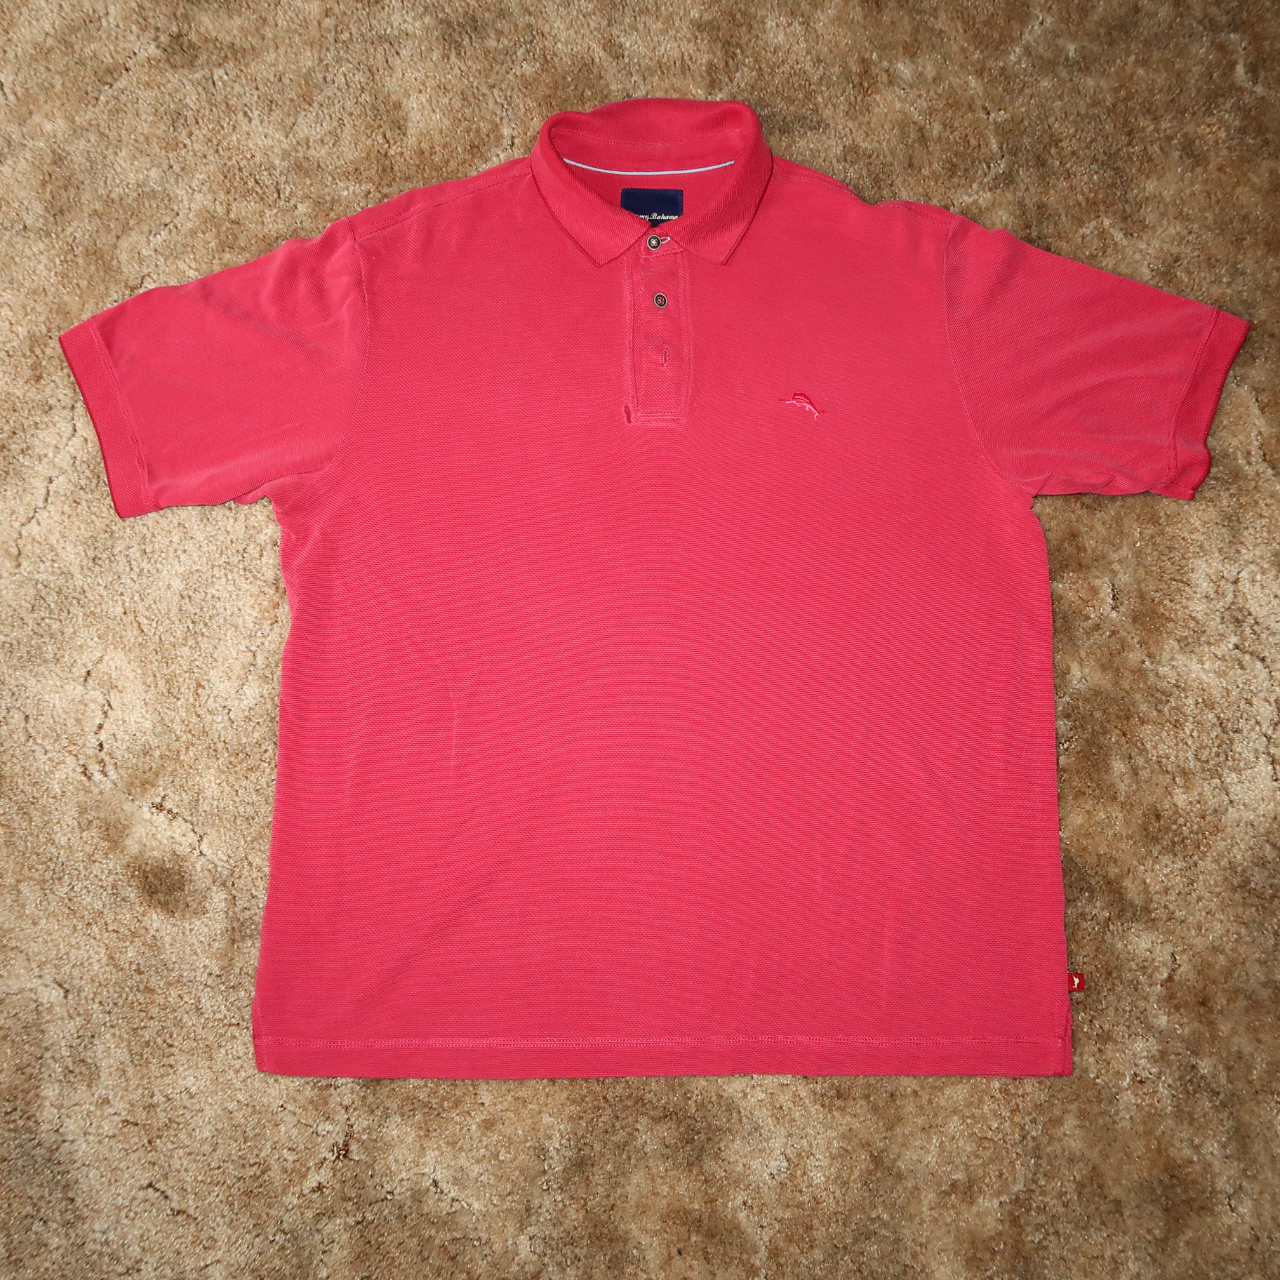 Product Image 1 - Tommy Bahama Vintage Red Mens